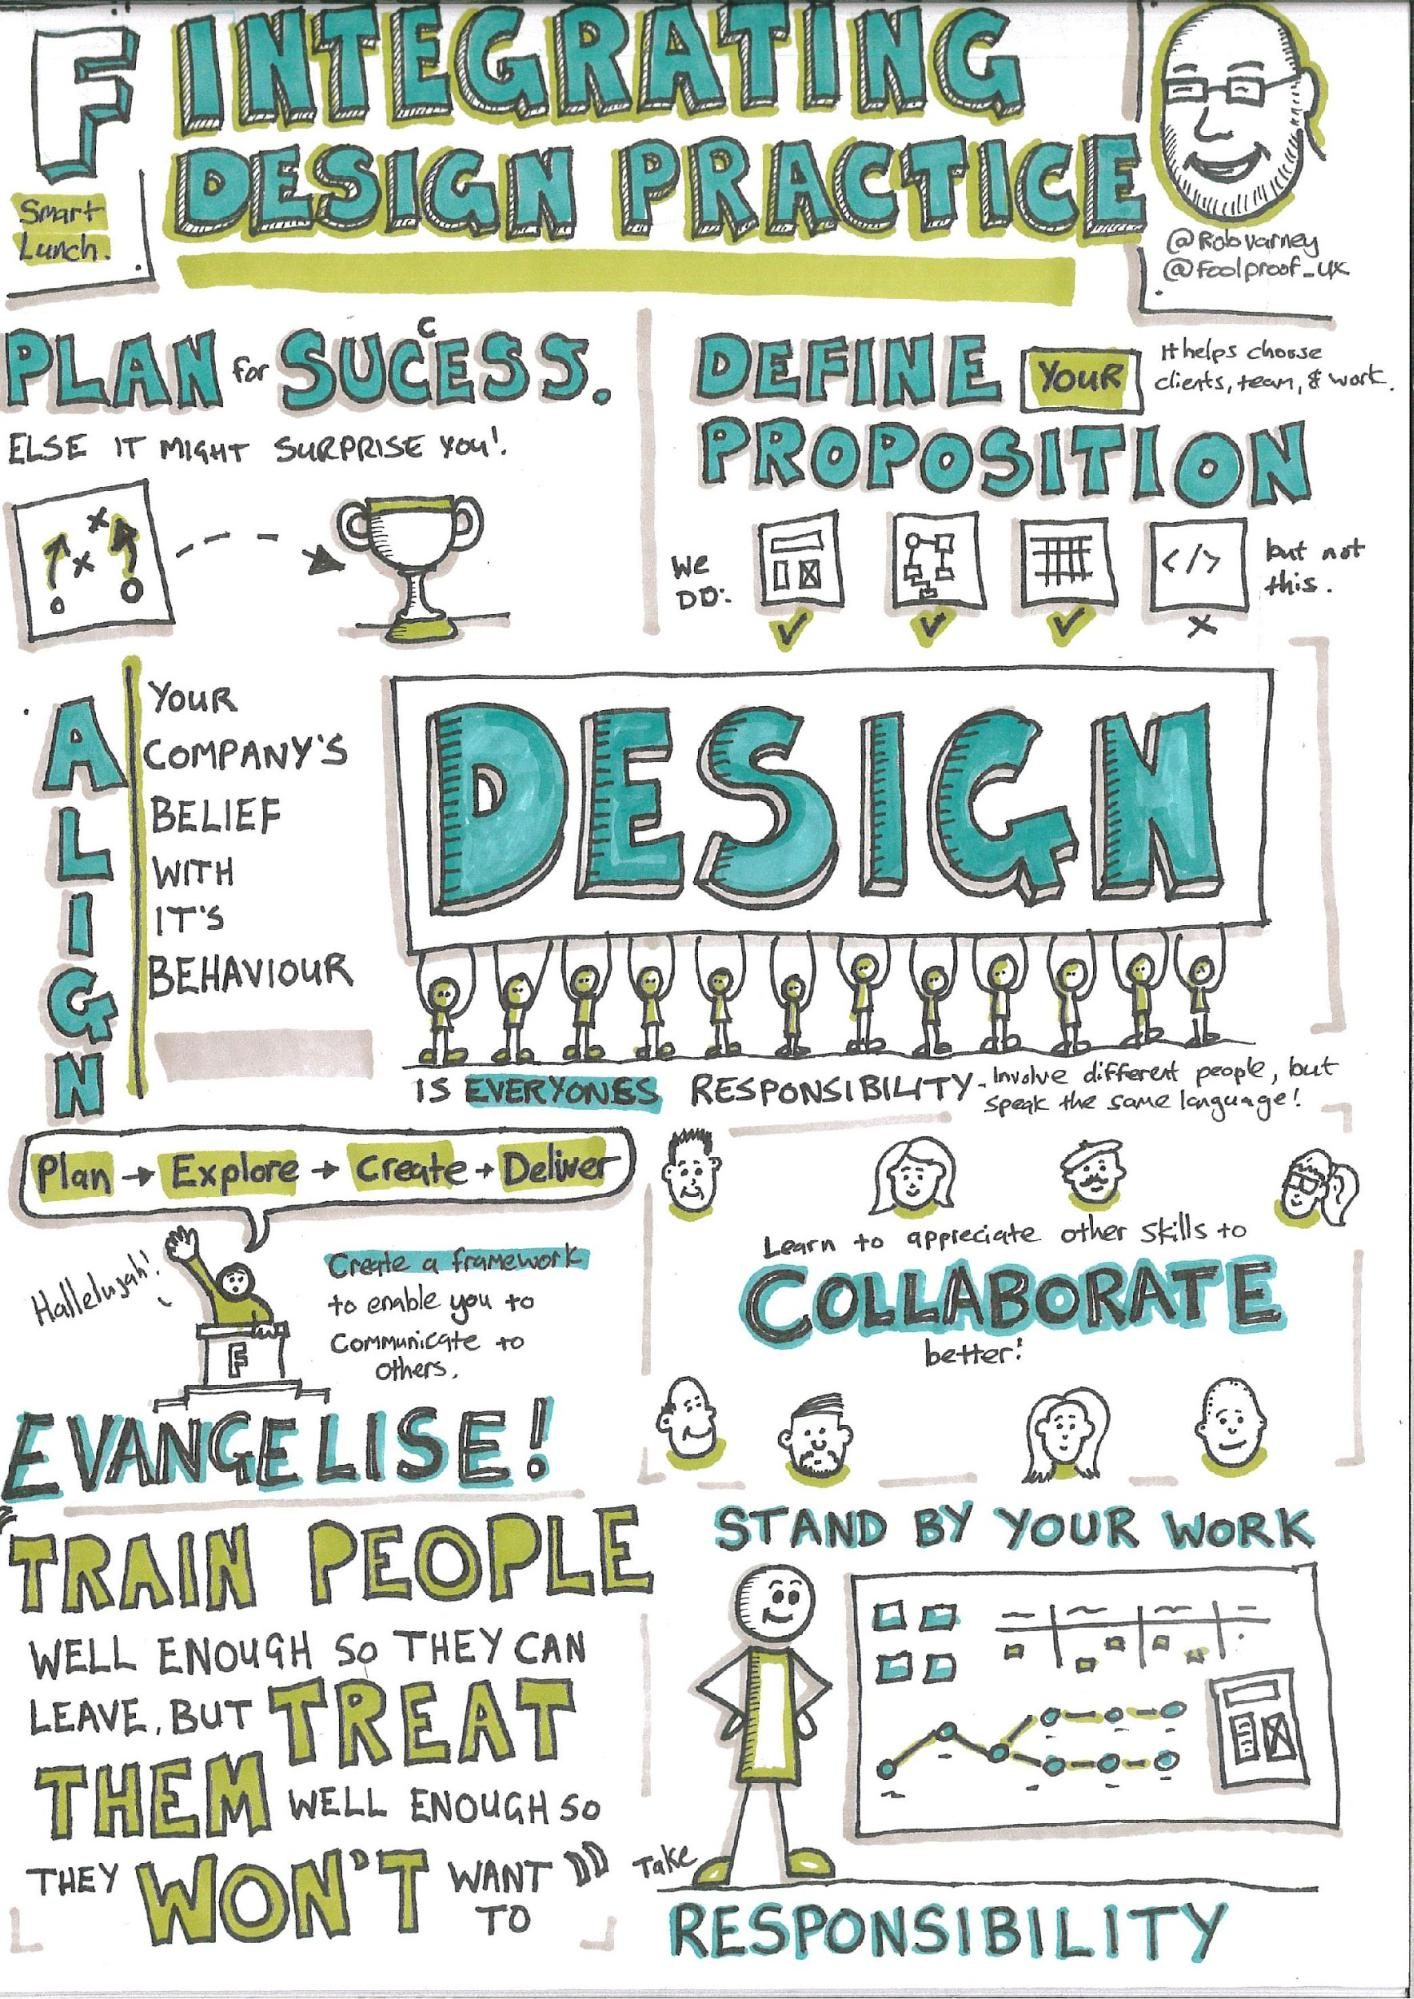 7 reasons for sketching in UX design